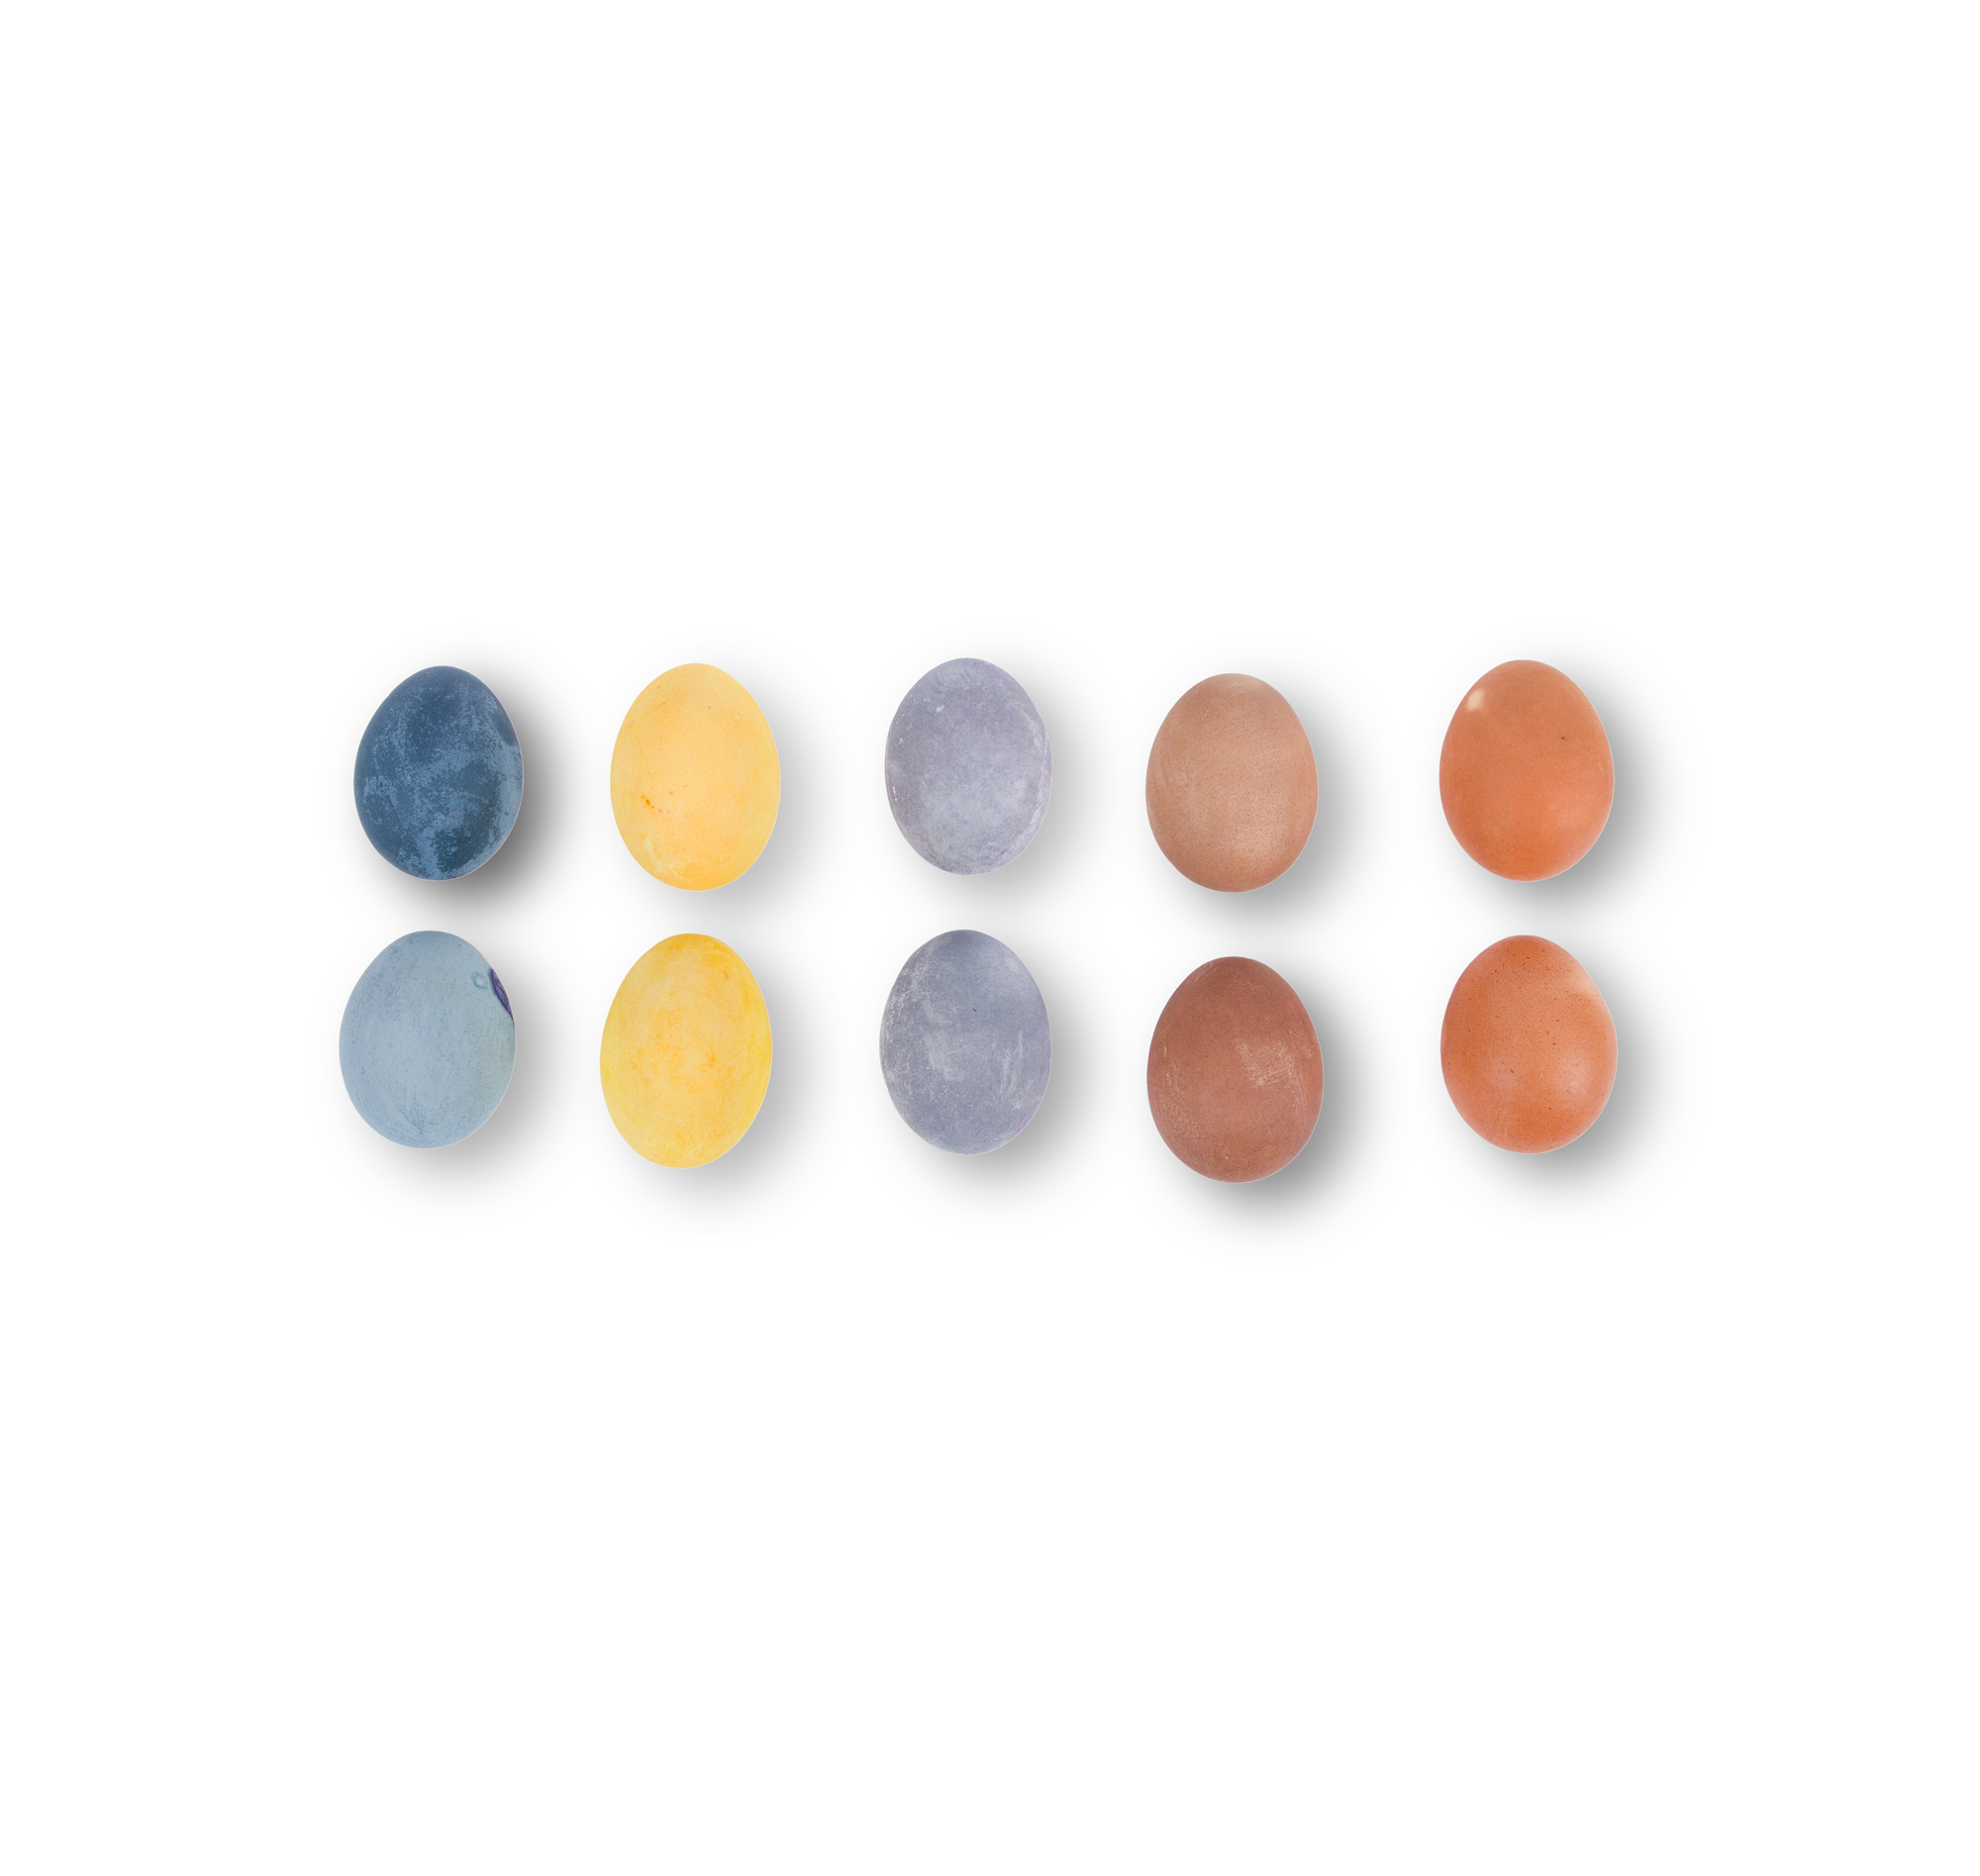 Natural dye